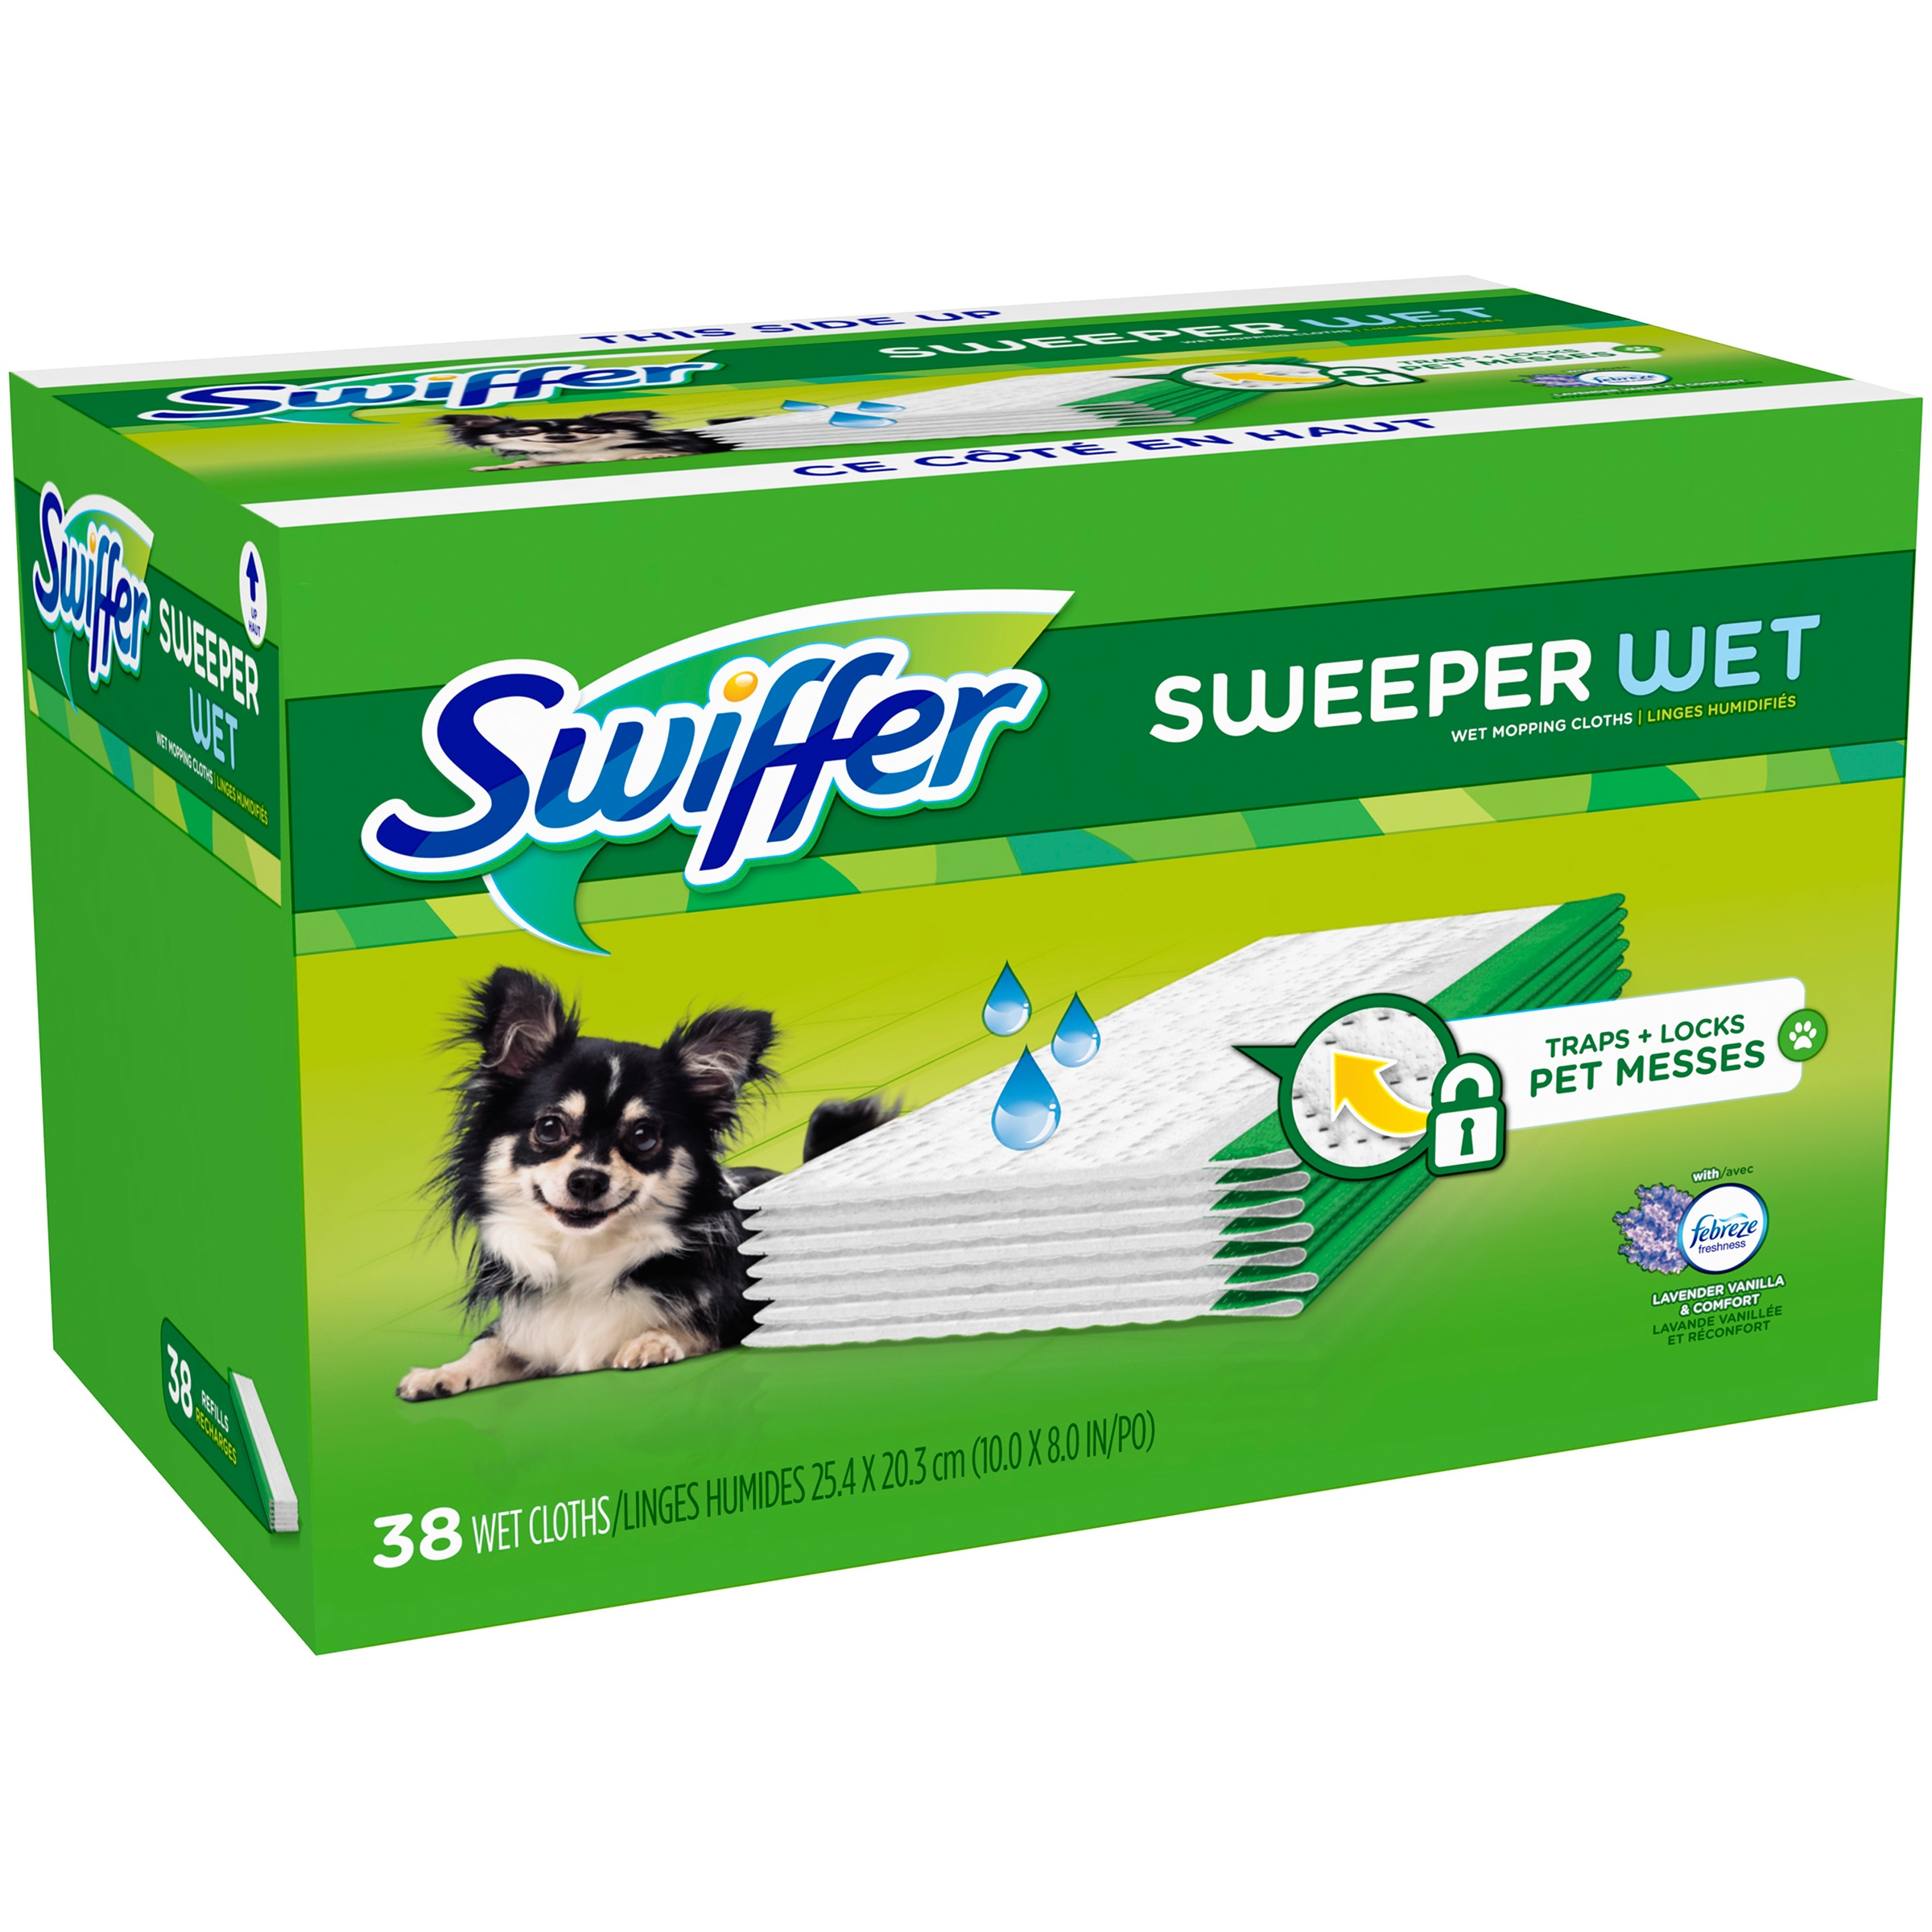 Swiffer with Febreze Lavender Vanilla & Comfort Sweeper Wet Wet Mopping Cloths 38 ct Box